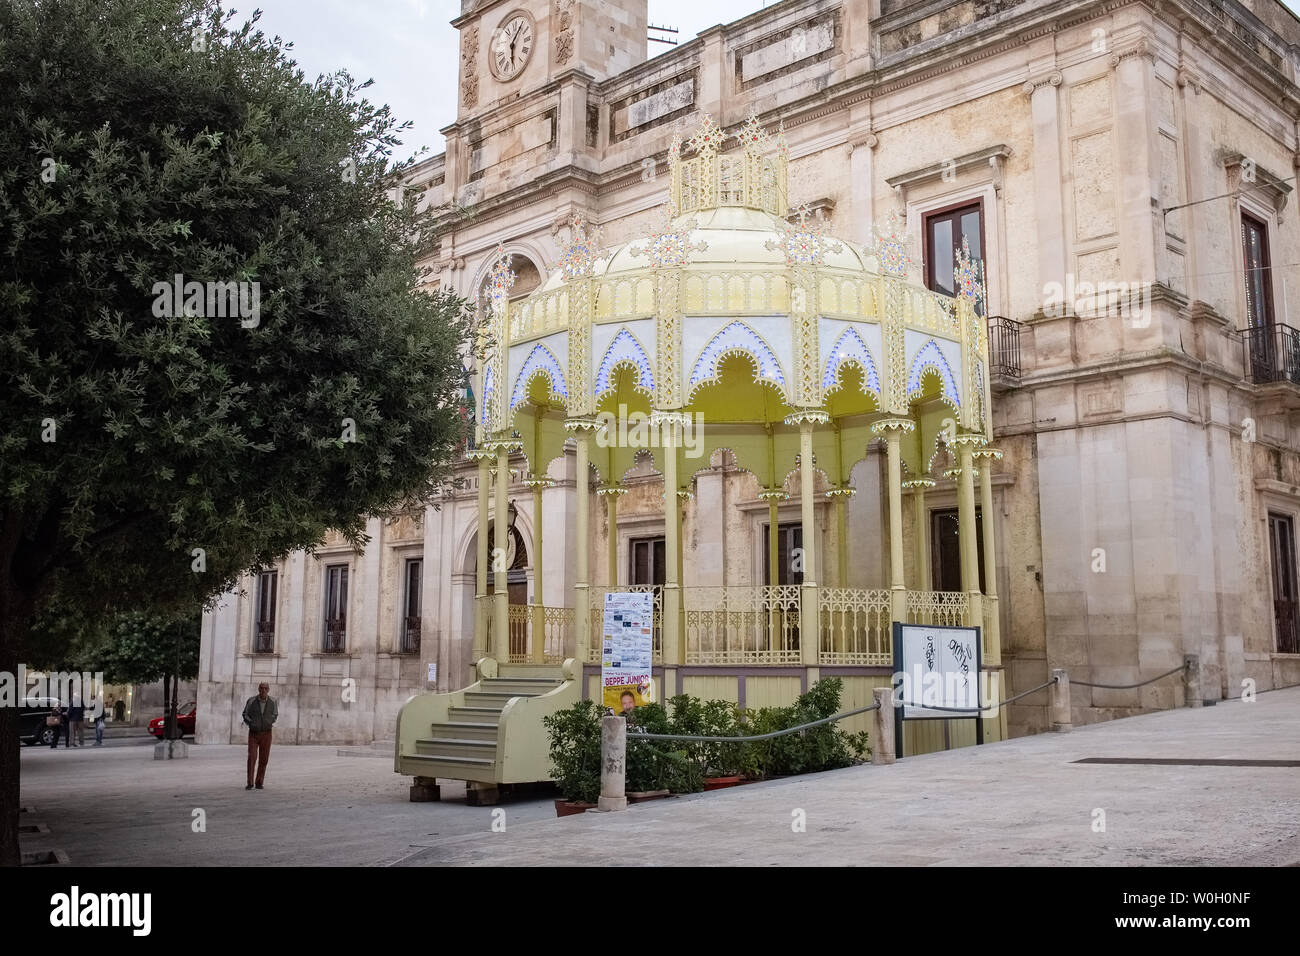 GIOIA DEL COLLE, ITALY - OCTOBER 6, 2018: Traditional Apulian bandstand setup for Our Lady of the Rosary festival - Stock Image